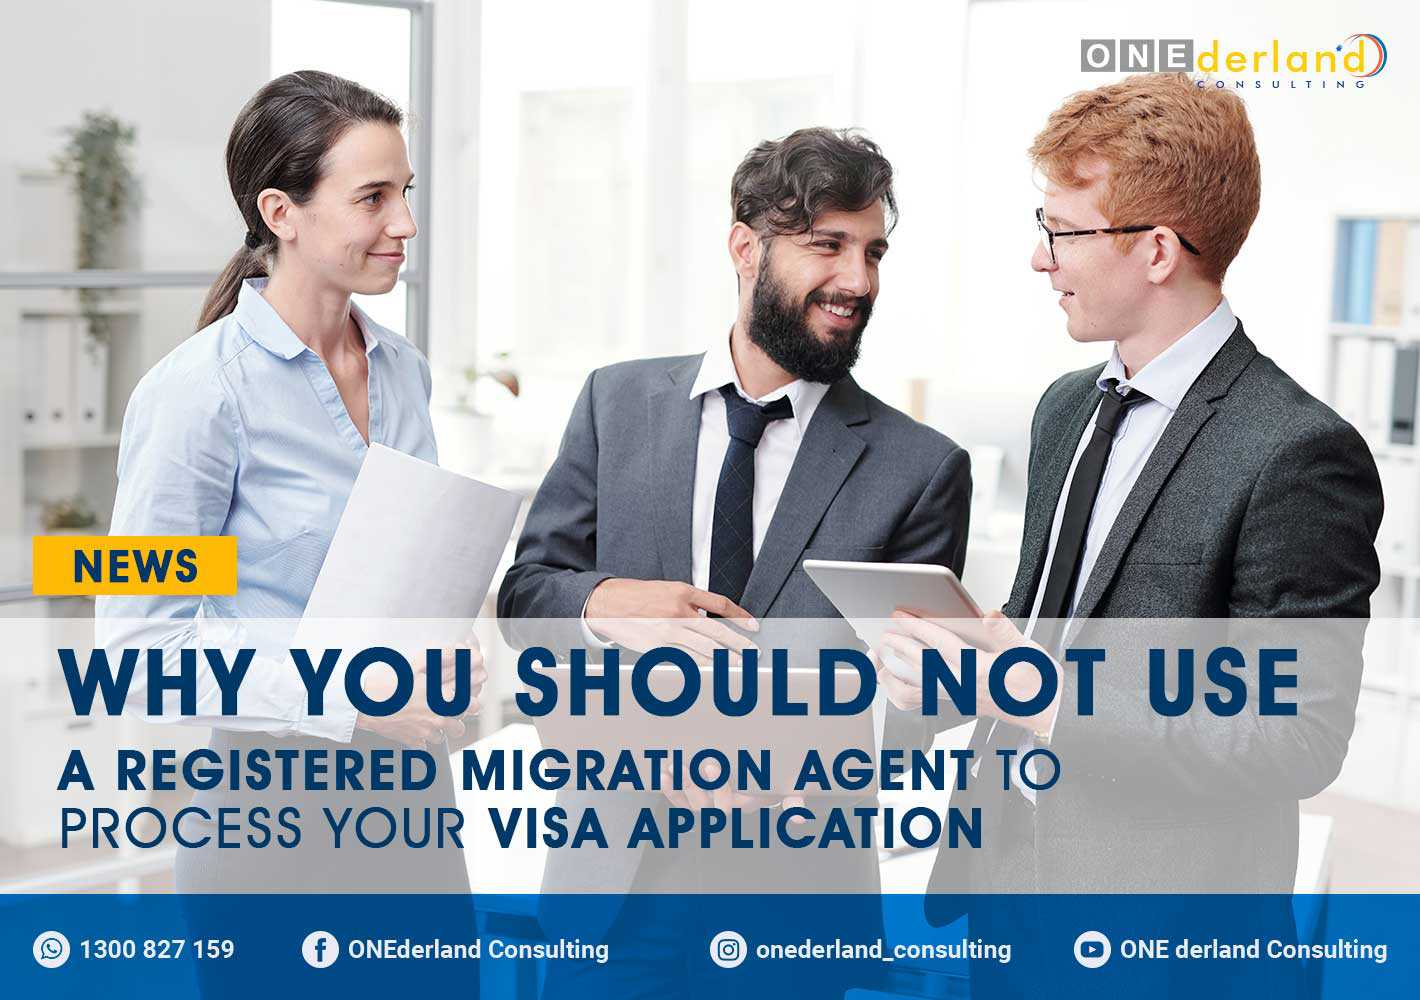 Why You Should Not Use A Registered Migration Agent For Your Visa Application